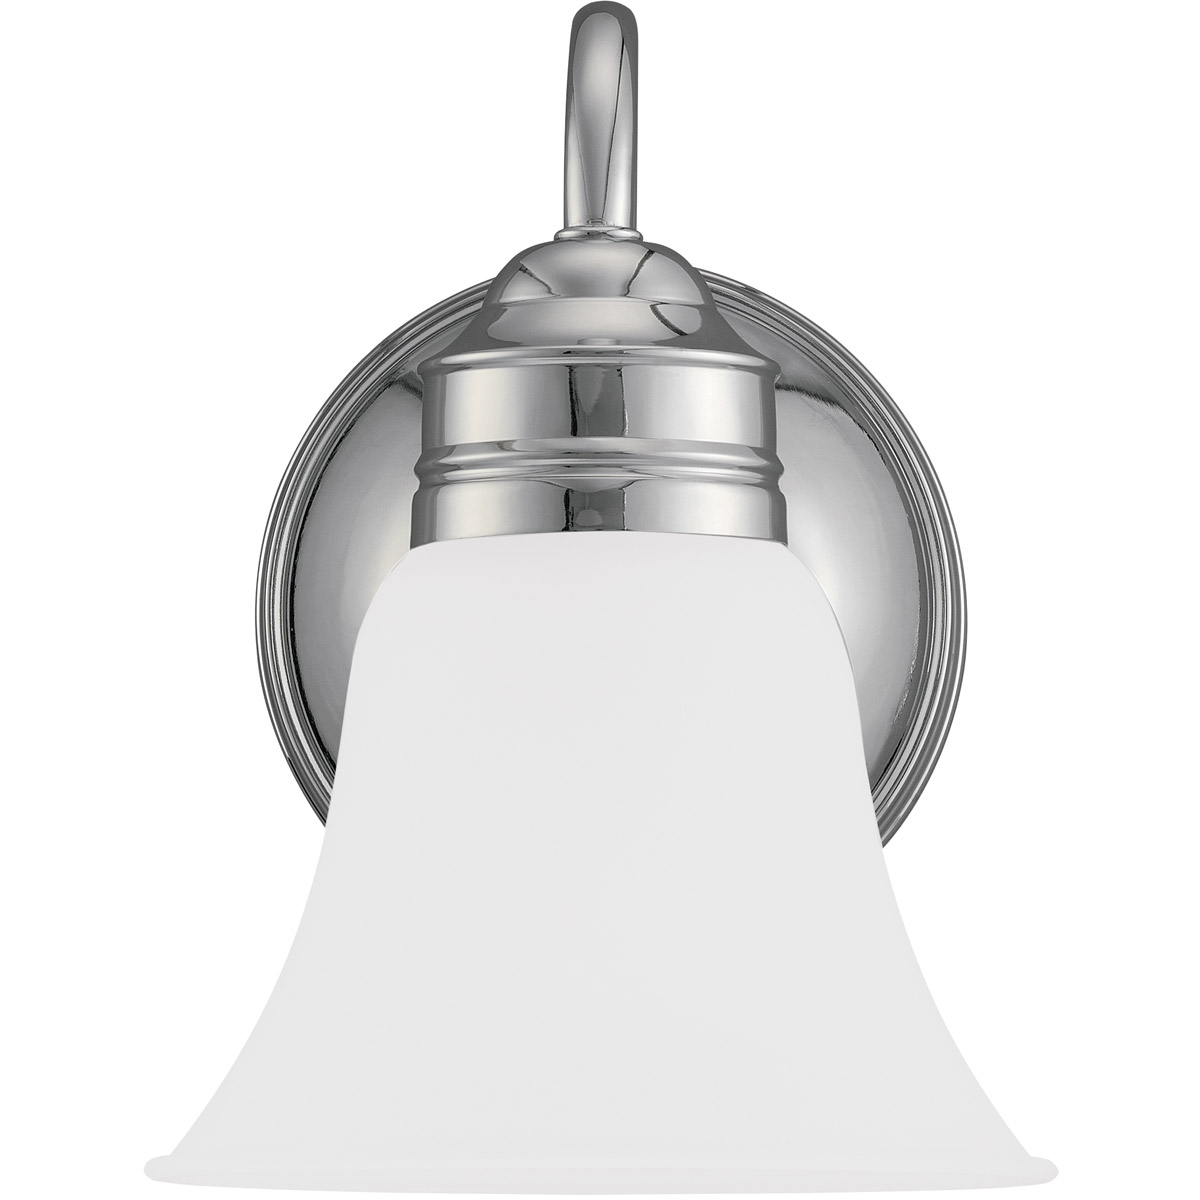 Sea Gull Lighting Gladstone 1 Light Bath Vanity in Chrome 44850-05